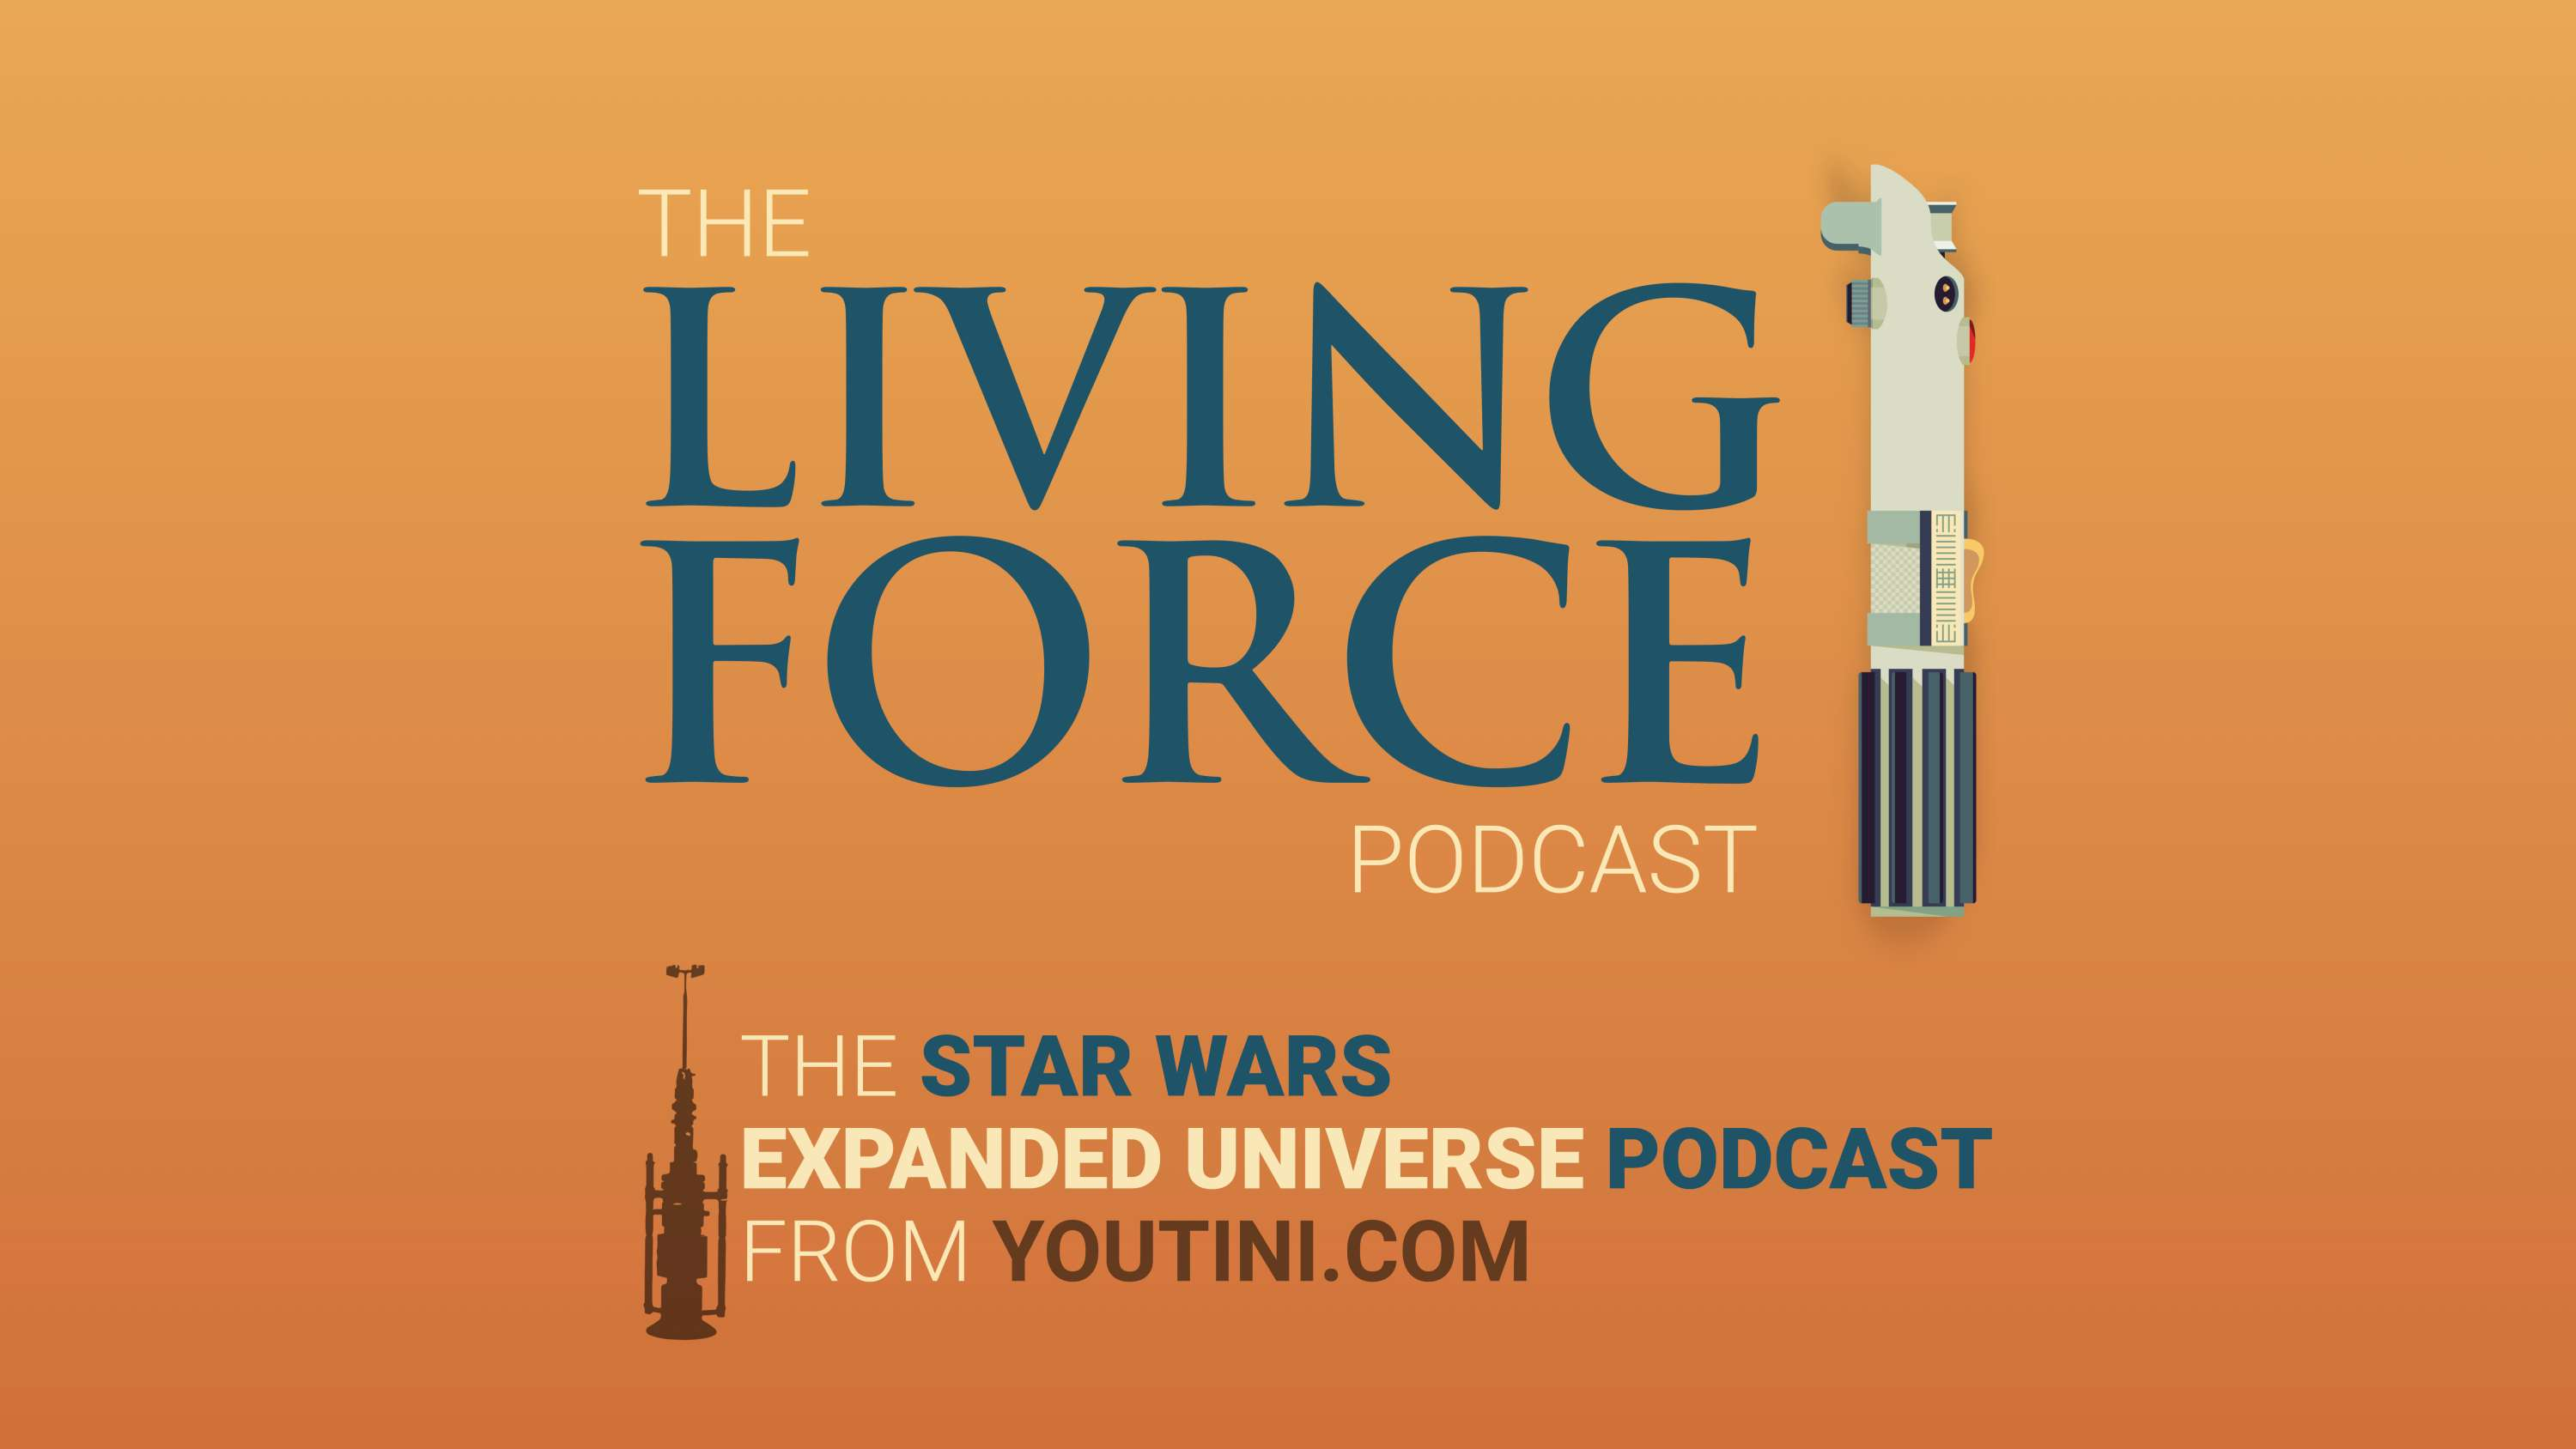 The Living Force Podcast logo from Youtini